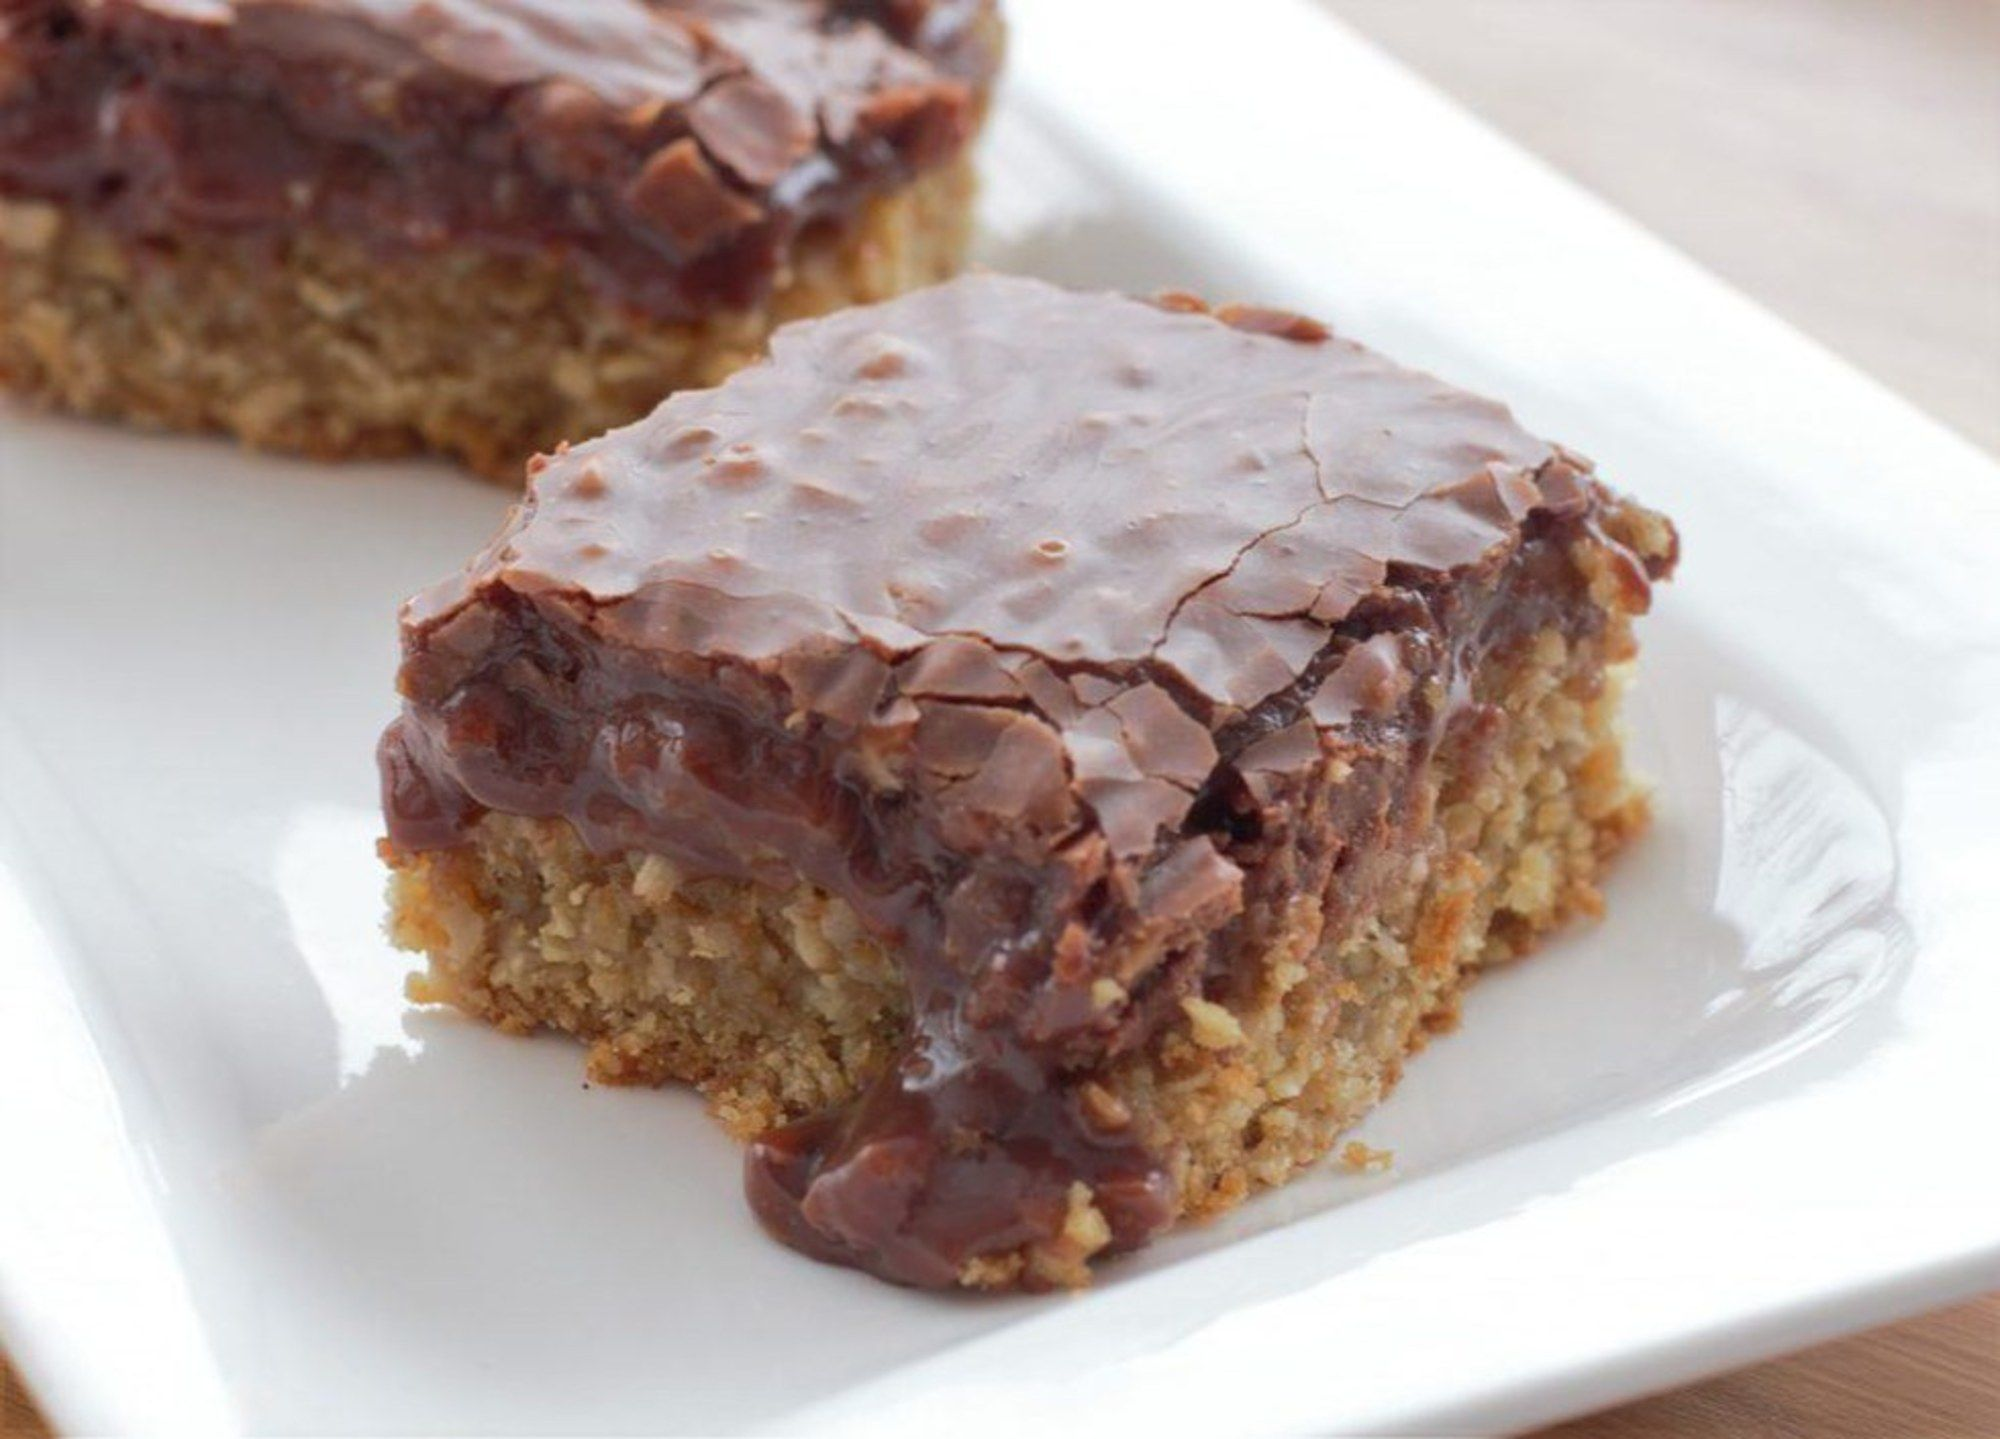 These chocolate oatmeal bars are easy to make and one of the yummiest treats ever made.